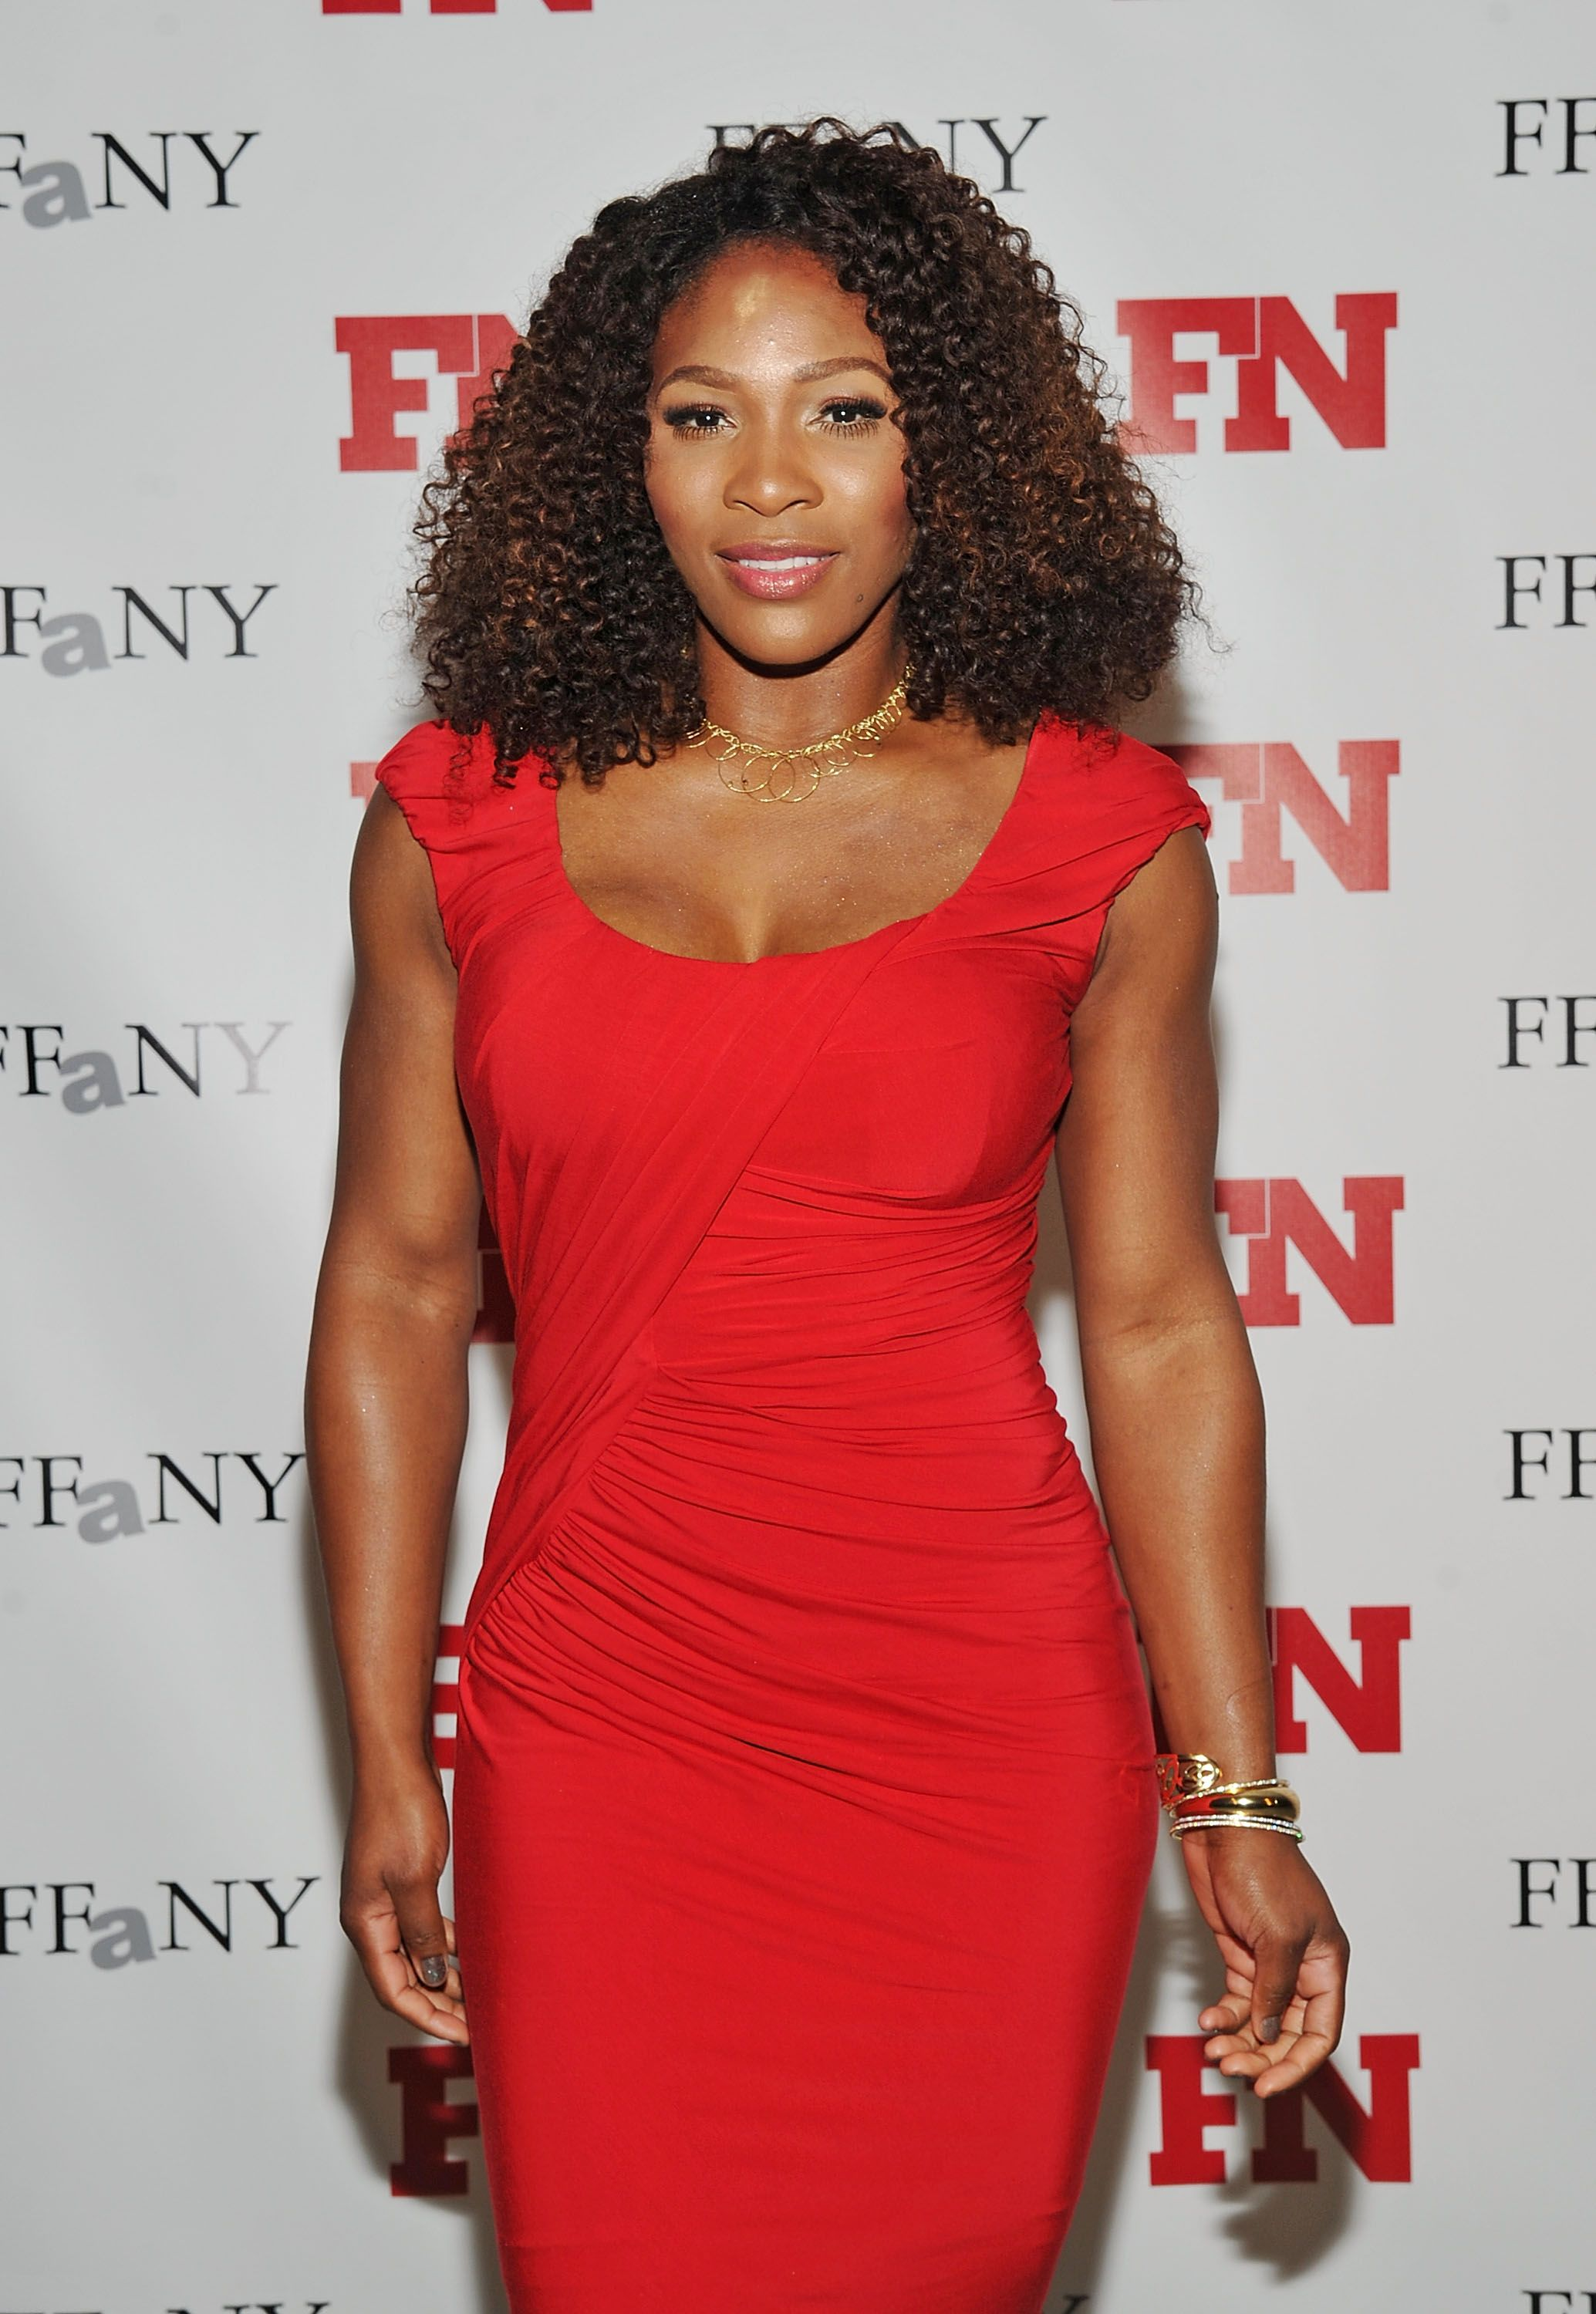 Serena Williams during the 25th Annual Footwear News Achievement Awards at the Museum of Modern Art on November 29, 2011 in New York City. | Source: Getty Images